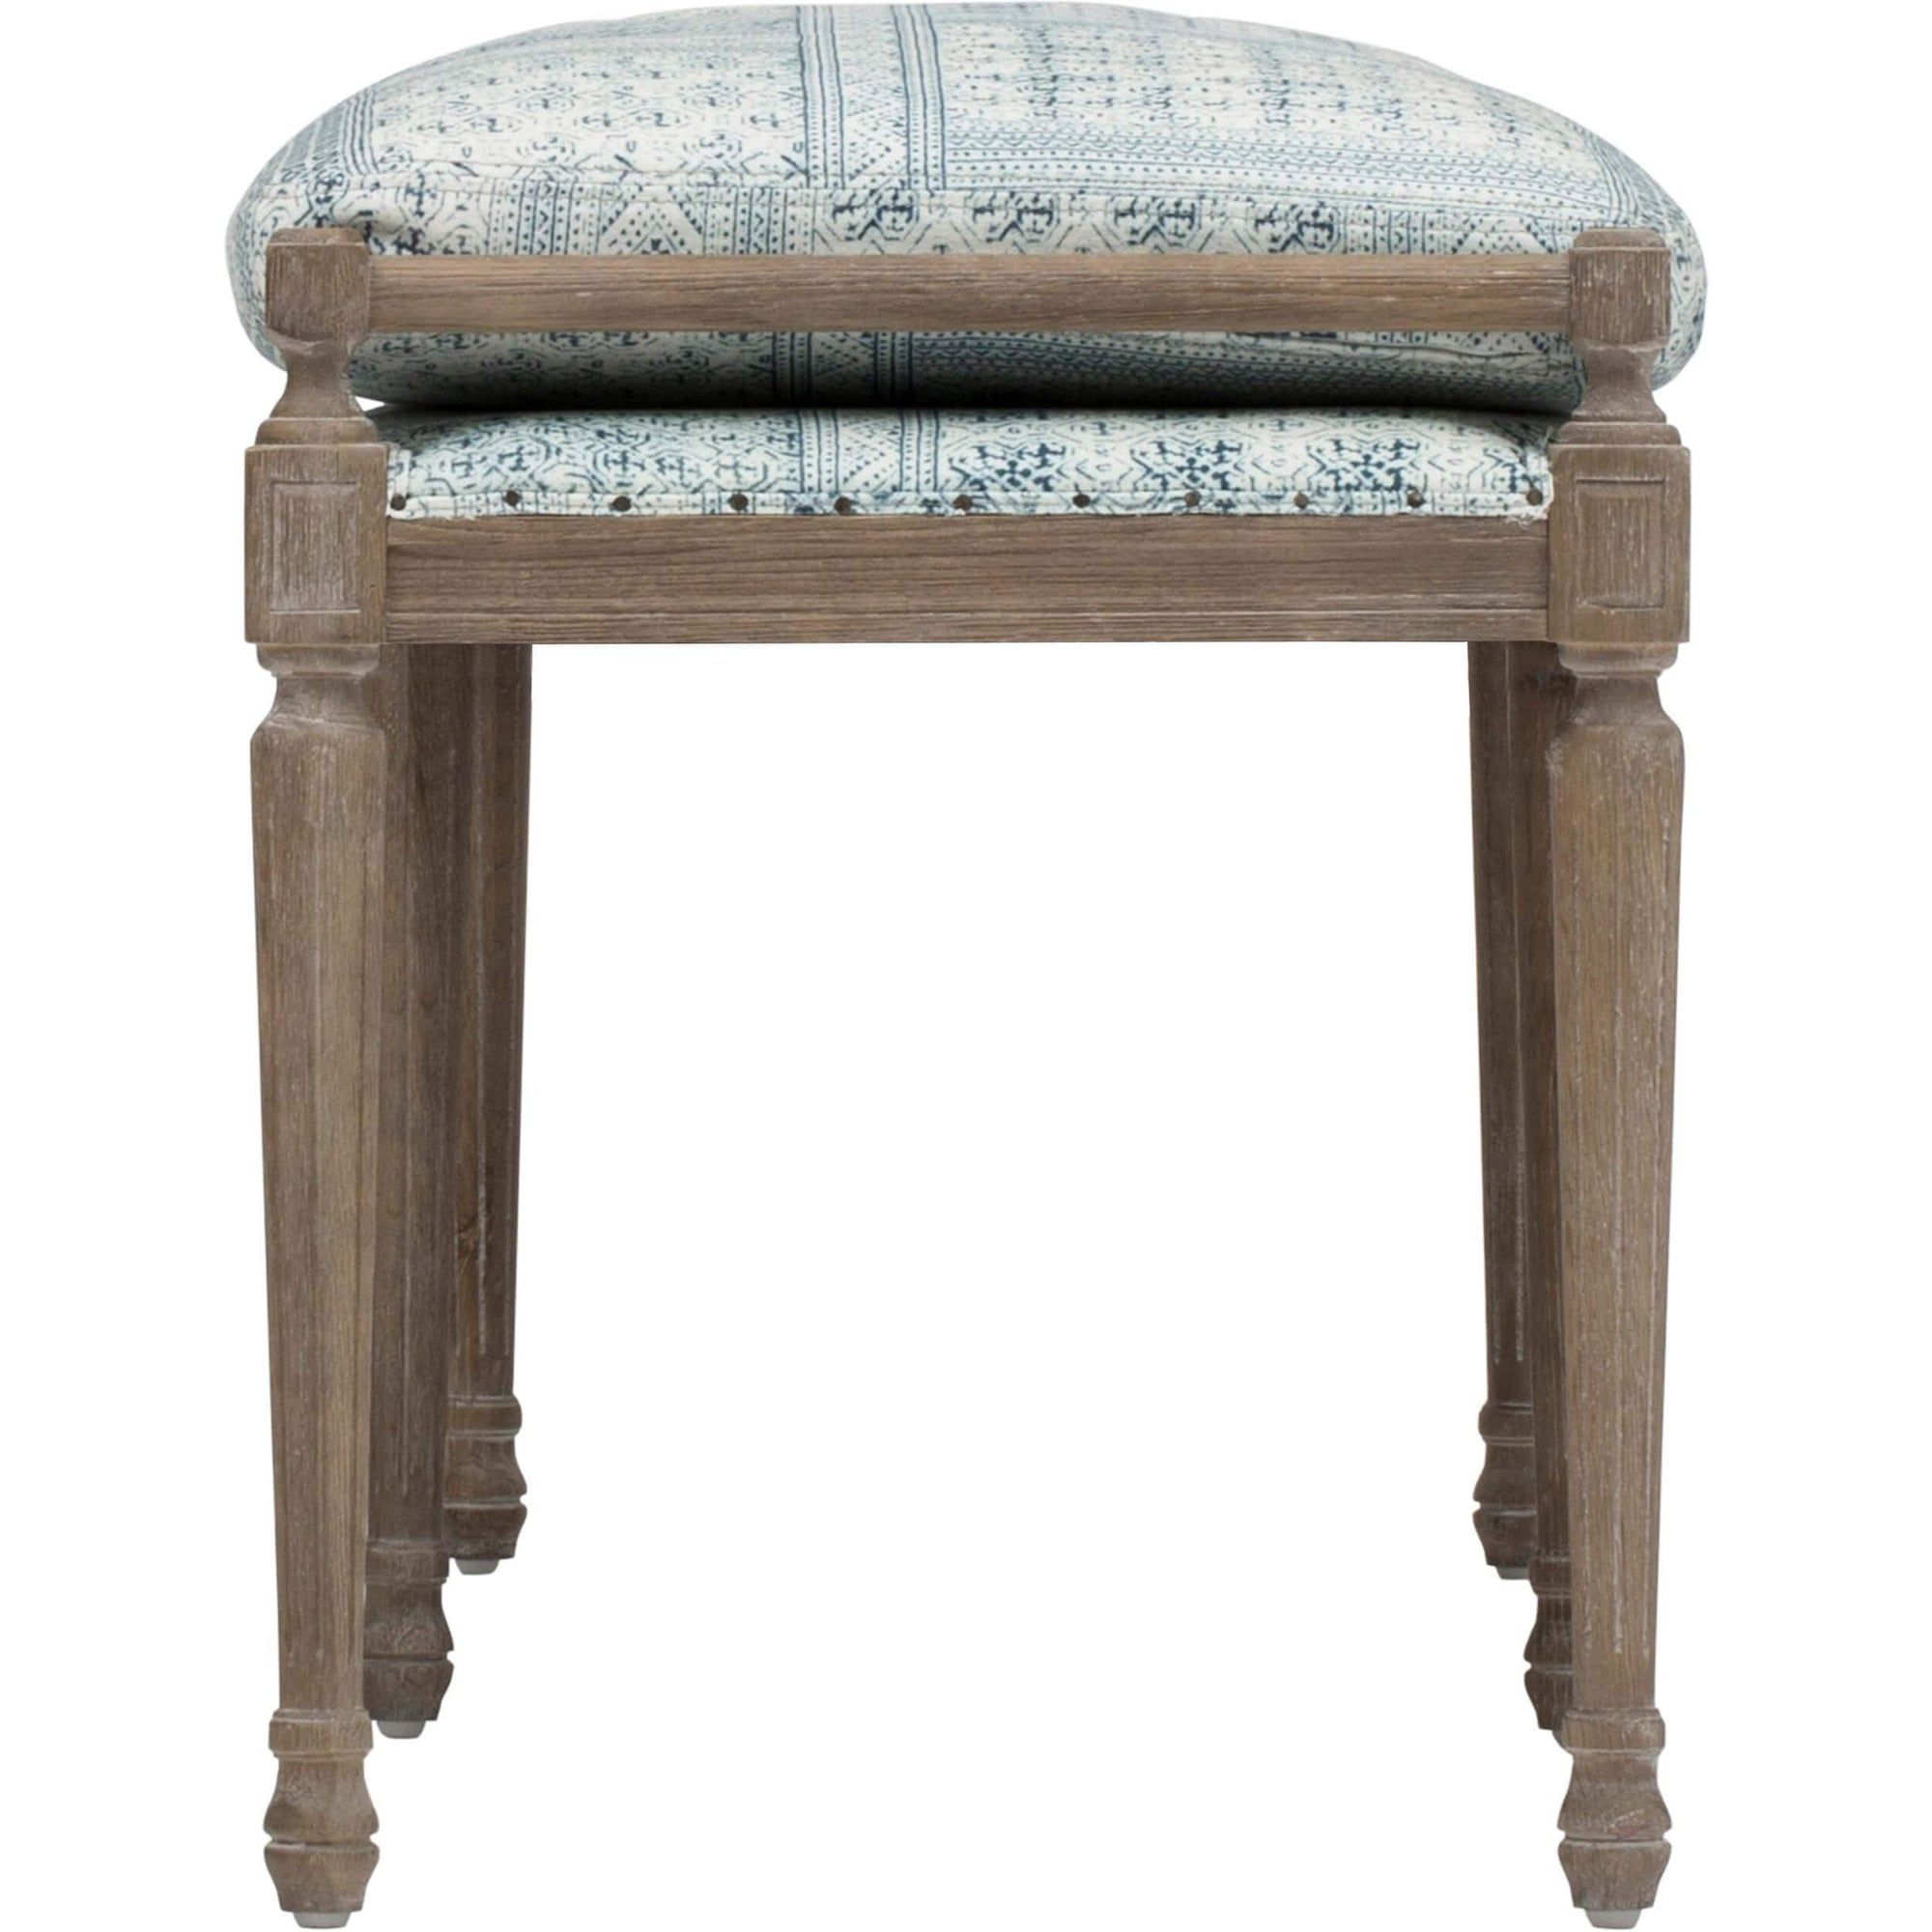 Phenomenal Lucille Dining Bench Batik Indigo High Fashion Home Onthecornerstone Fun Painted Chair Ideas Images Onthecornerstoneorg